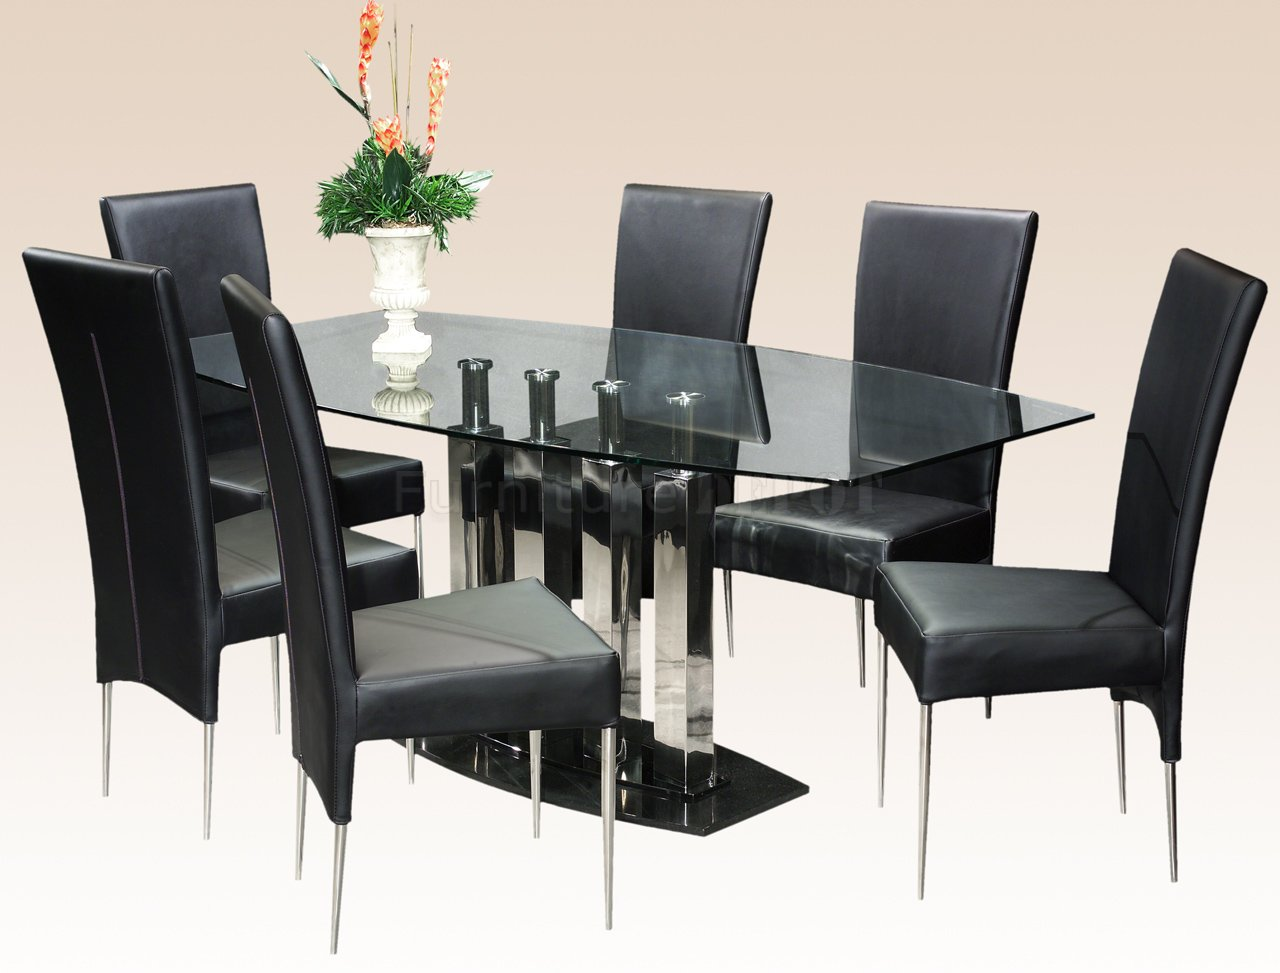 Dining table set glass - Rectangular Dining Table Design With Glass On Tops And Black Chairs